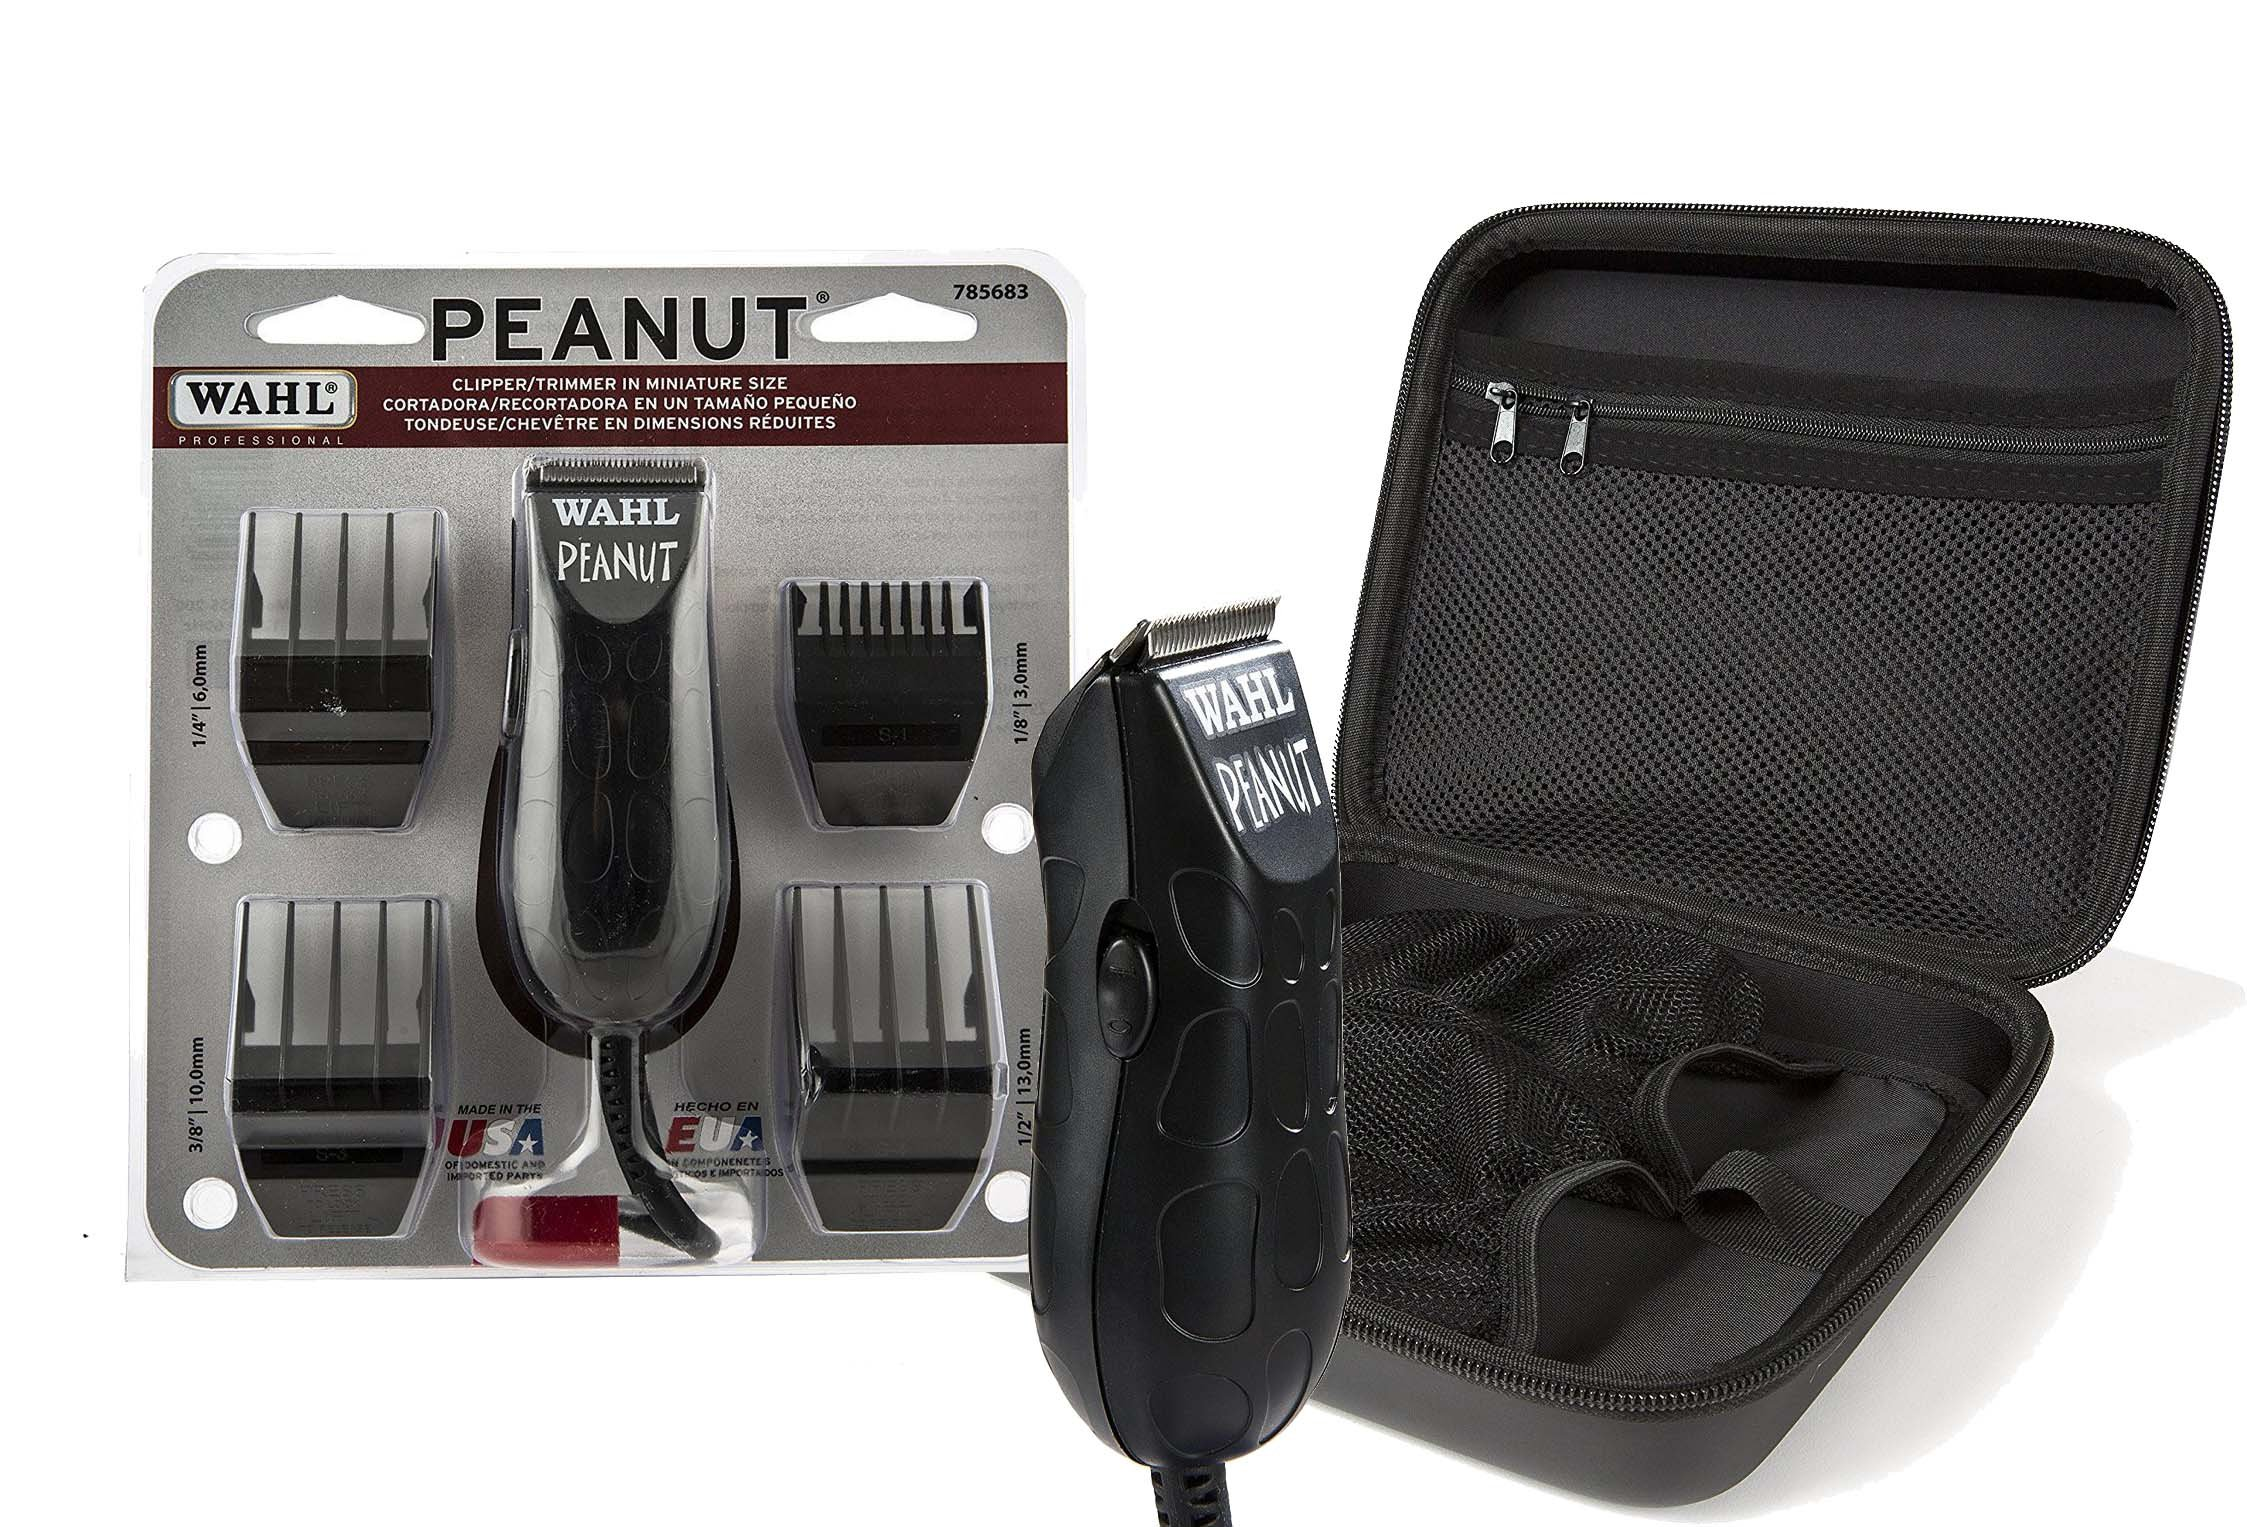 Wahl Professional Peanut Clipper/Trimmer #8655 with Travel Storage Case #90728 – Great for Barbers and Stylists